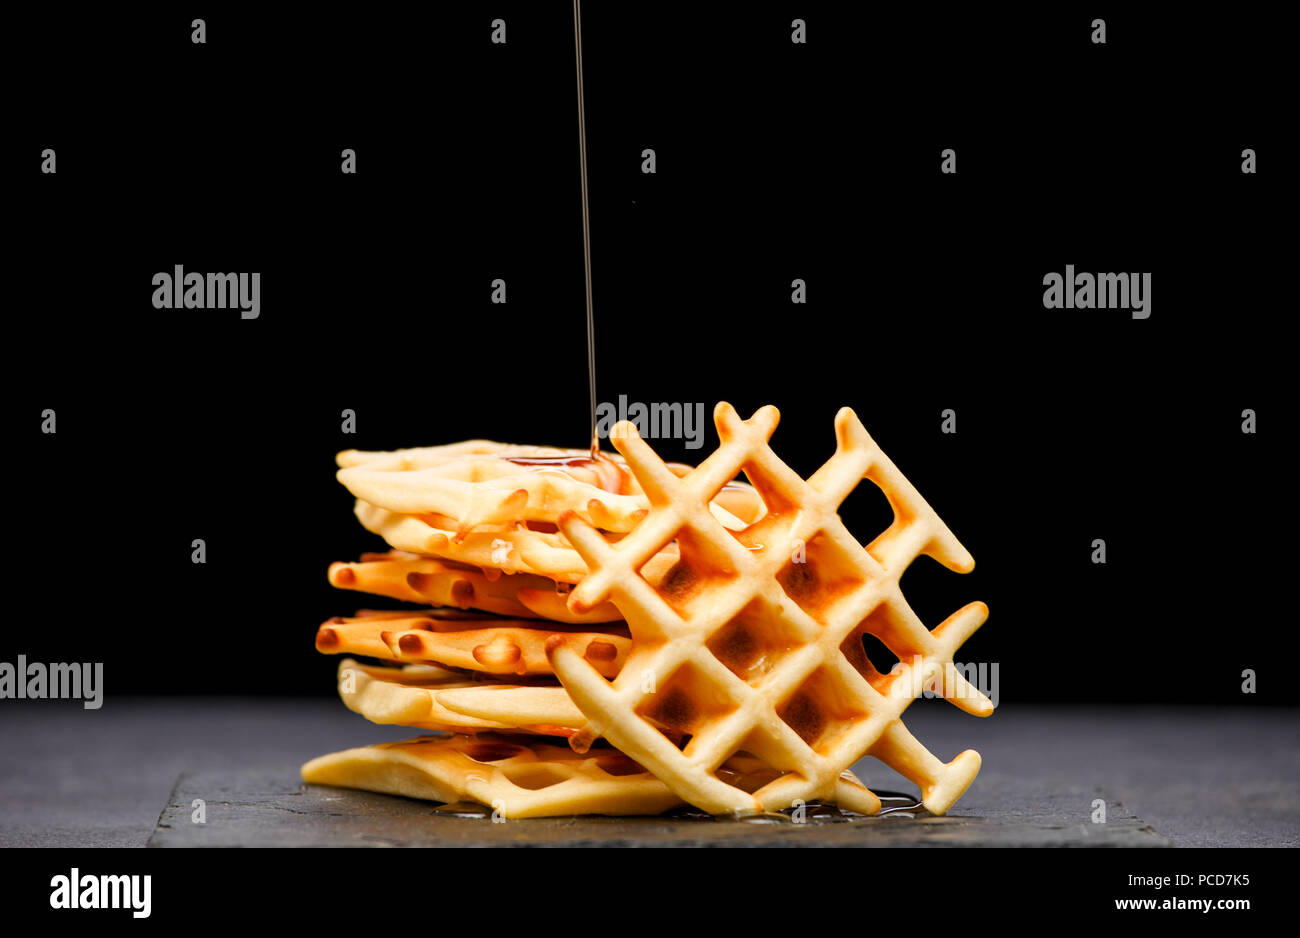 Photo of Viennese wafers with honey on an black background - Stock Image